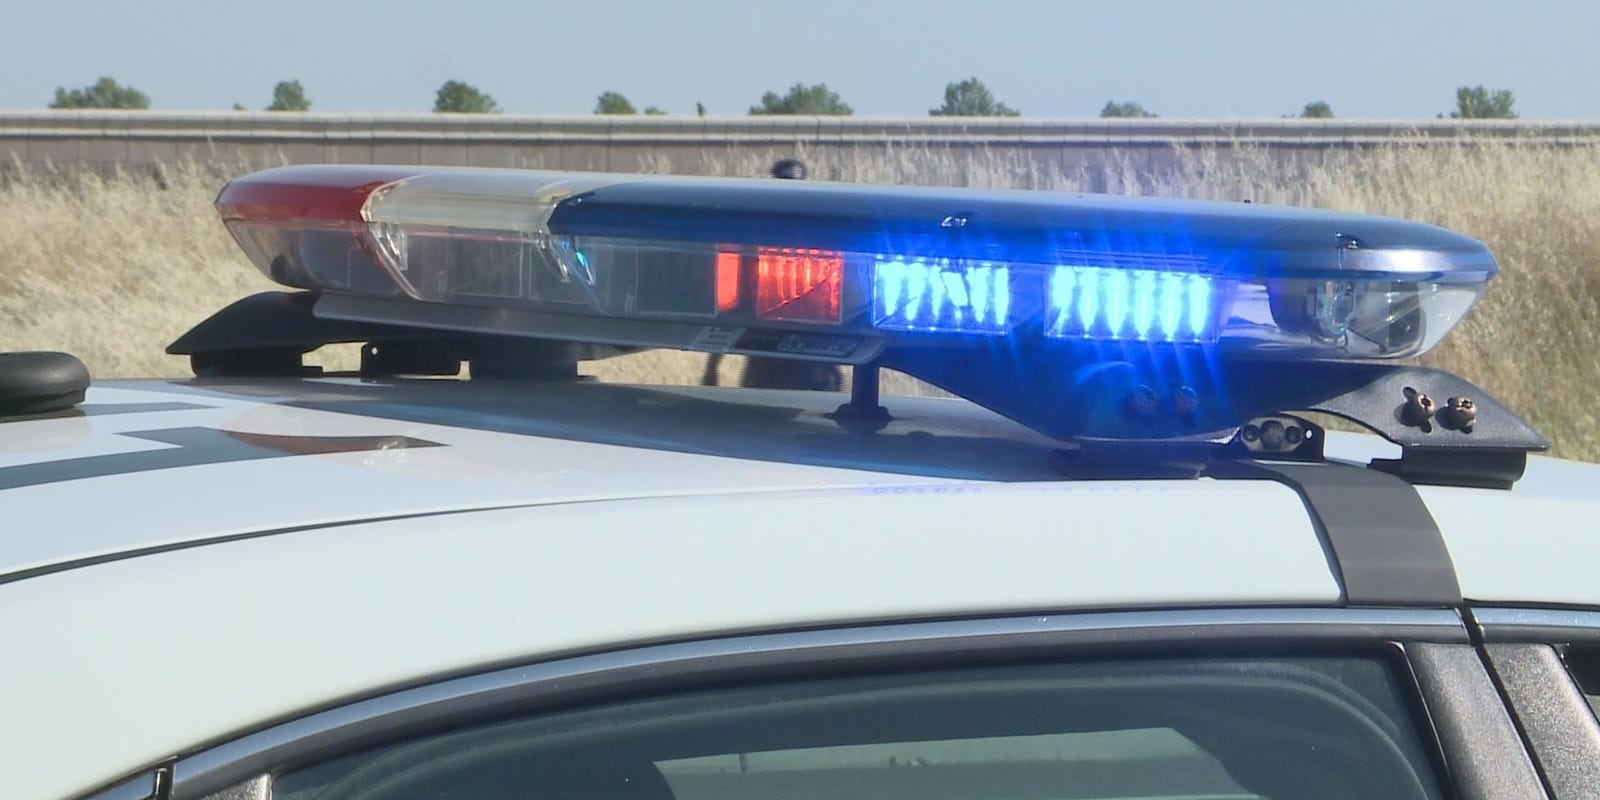 14 Year Old Arrested For Alleged Roseville Bomb Threat